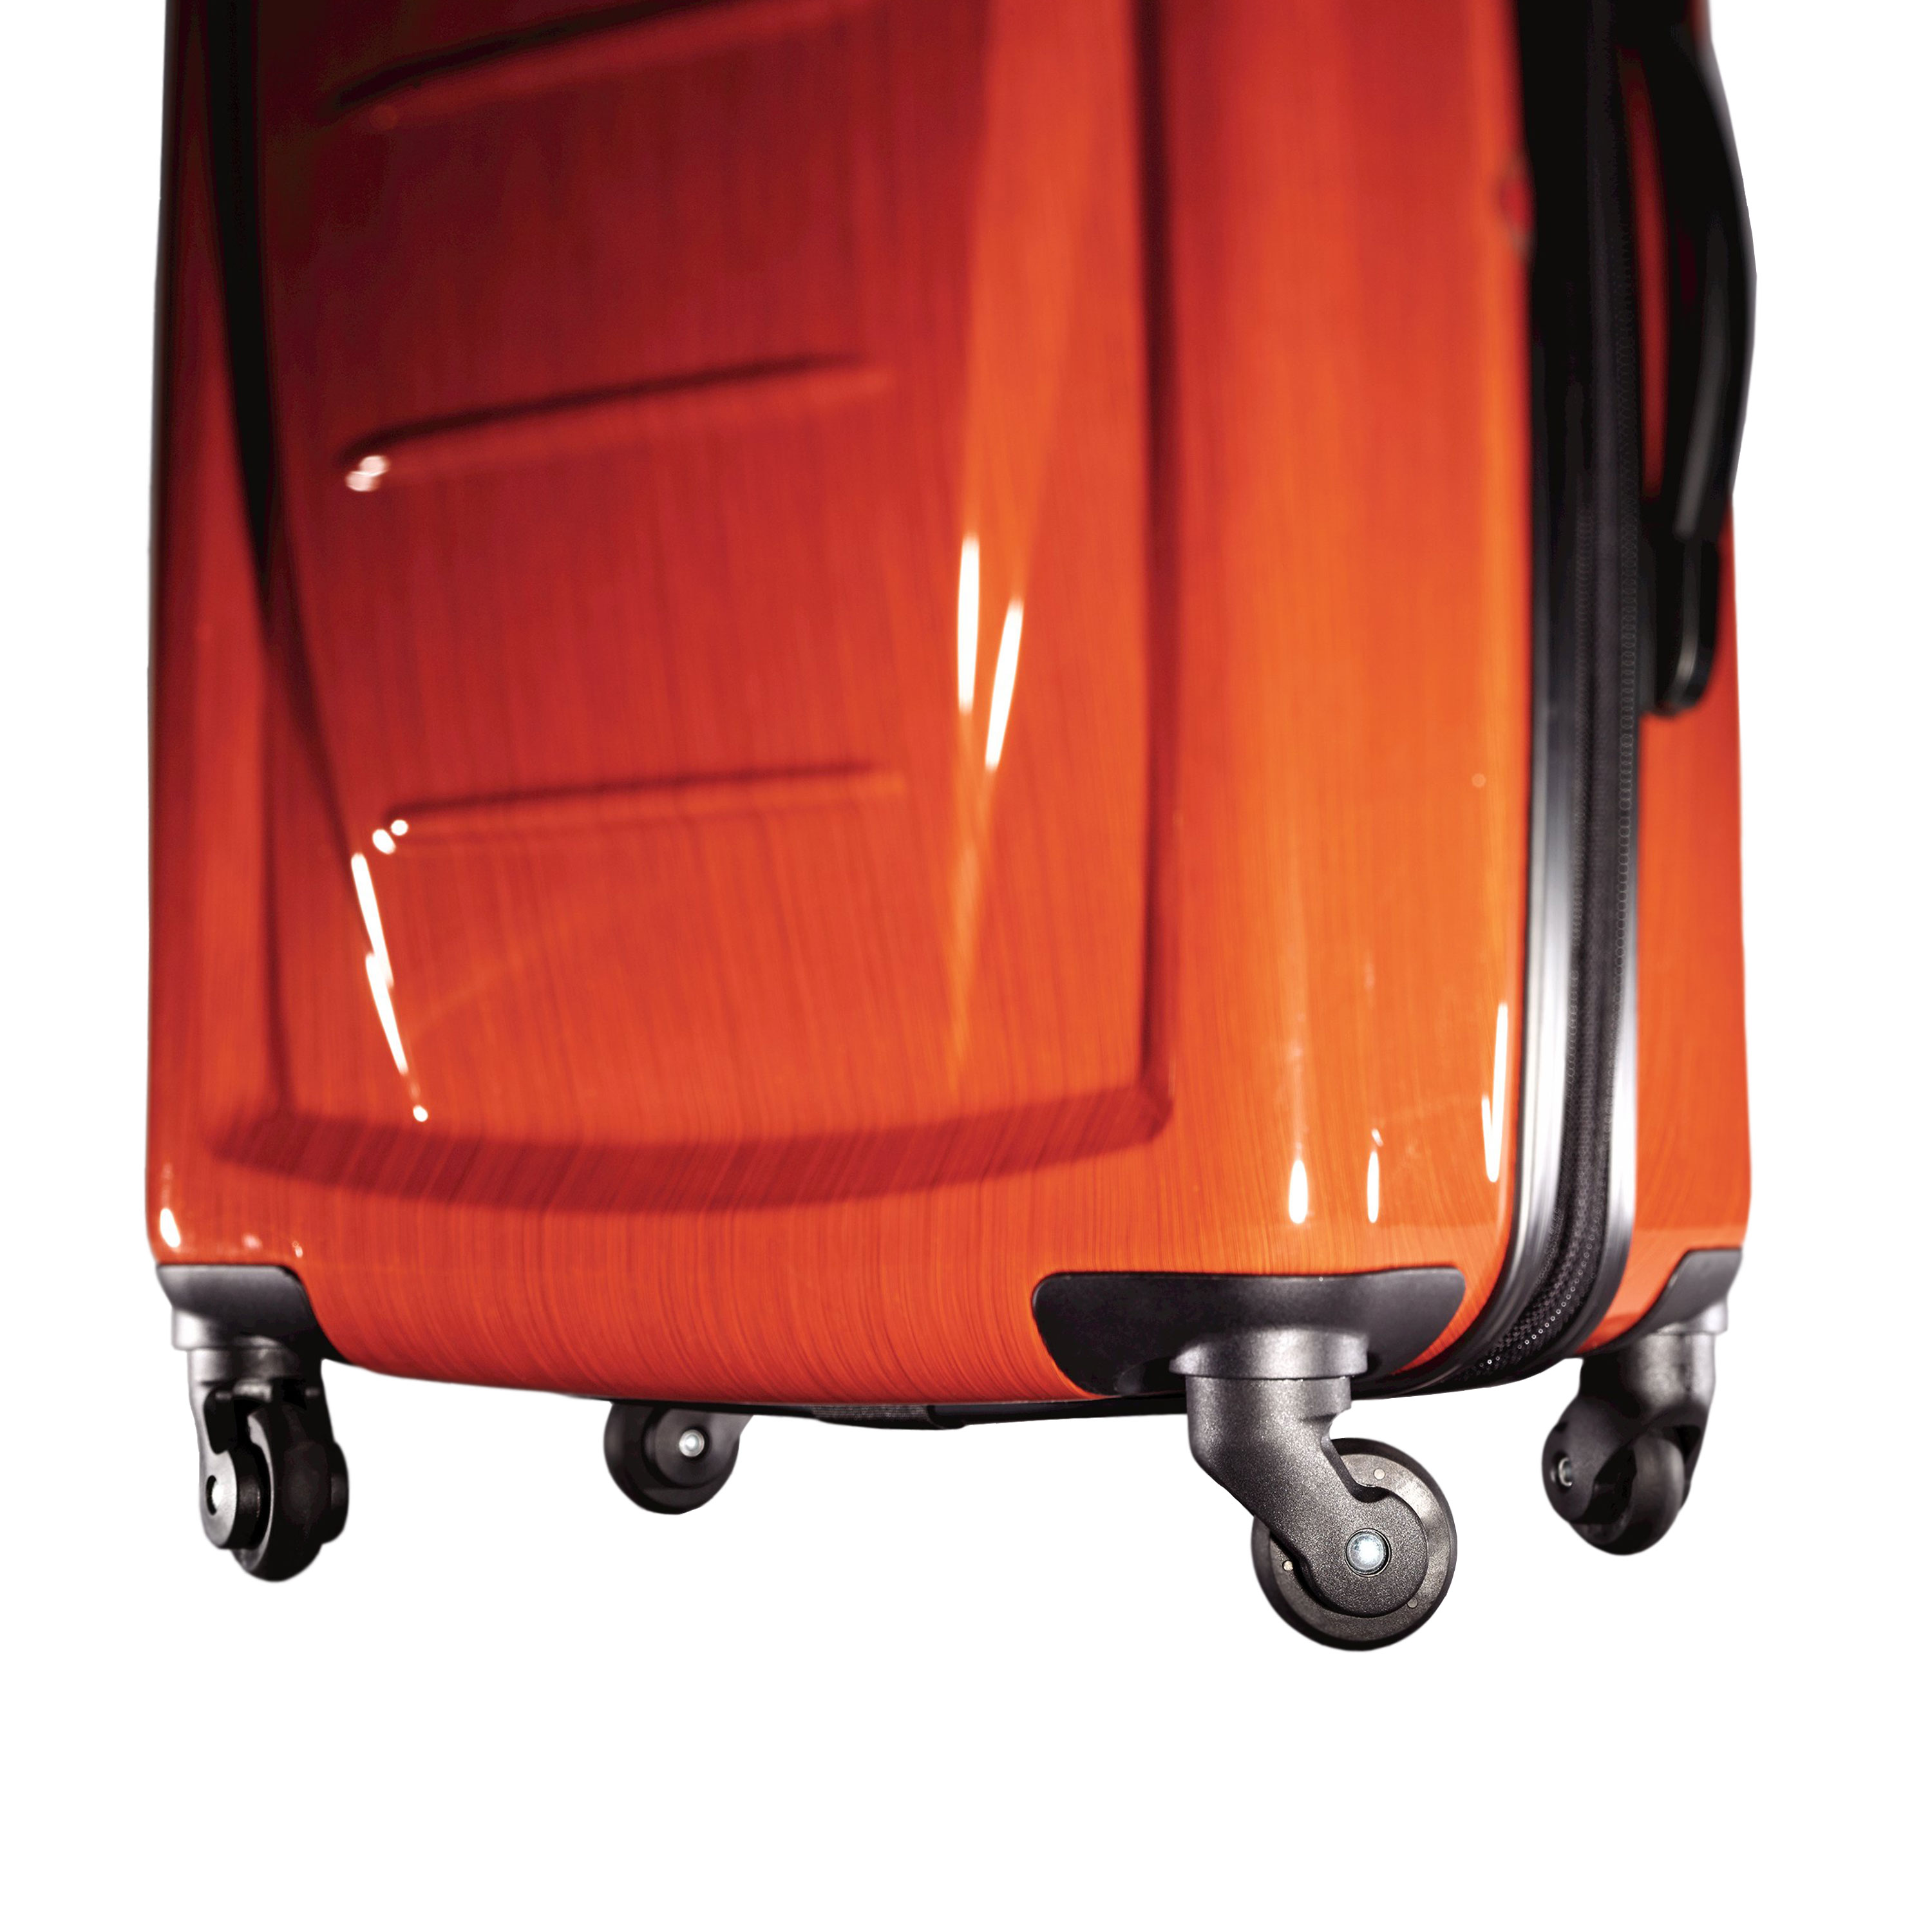 Samsonite-Winfield-2-Fashion-Spinner-Luggage thumbnail 36